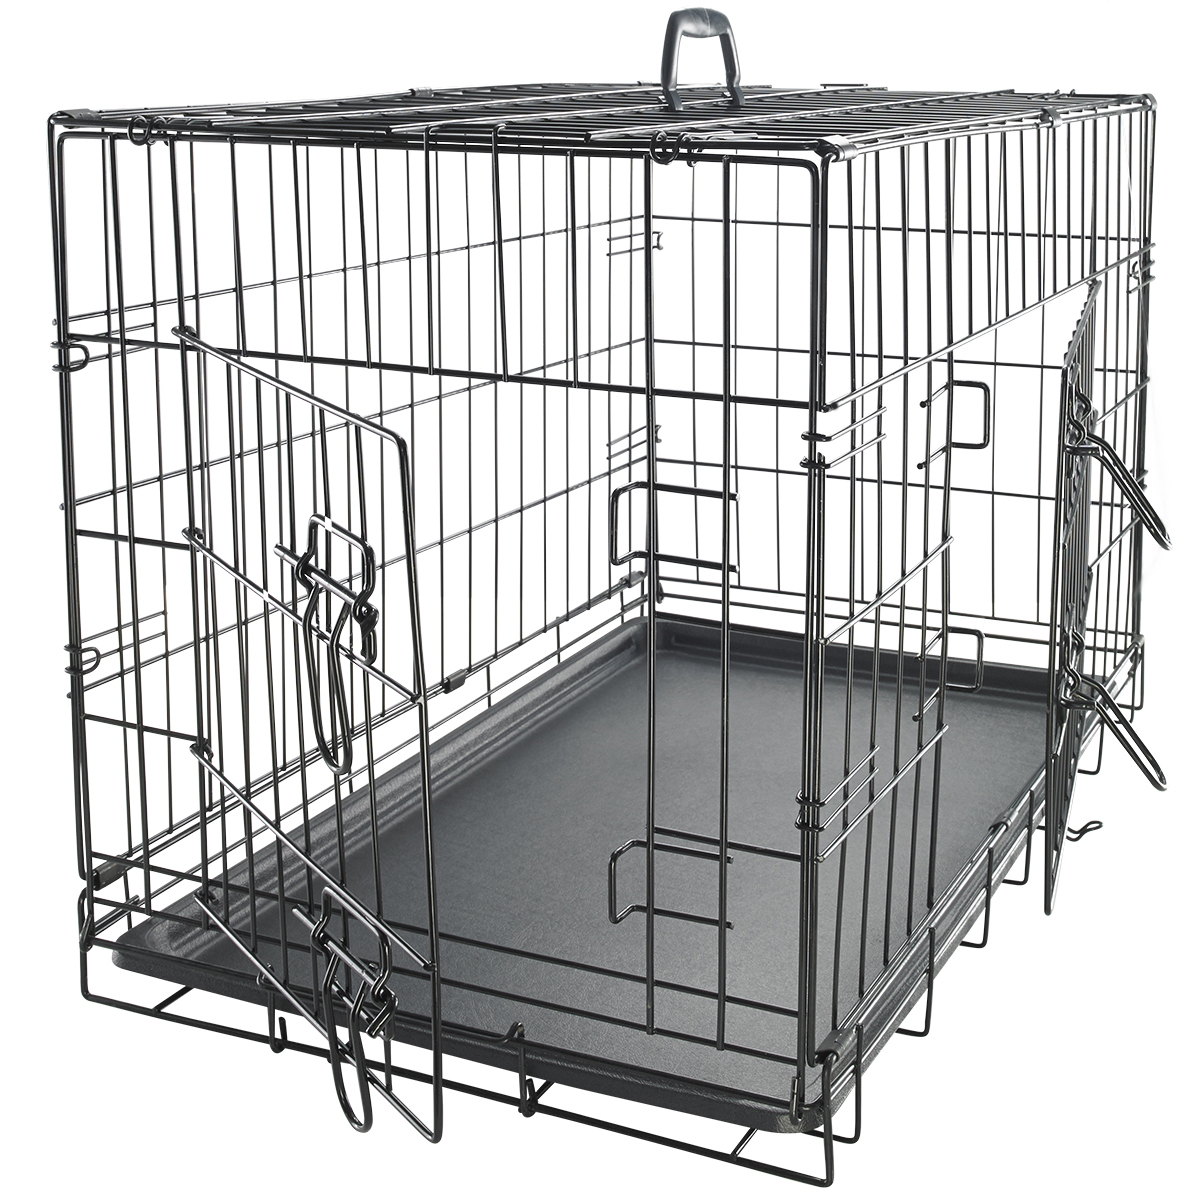 "OxGord 48"" Dog Crate with Divider, Double-Doors Folding Pet Cage with Heavy Duty Metal Wires and Removable ABS Plastic Tray. Animal Kennel folds into a Carry Case w/ Handle - XXXL: 48"" x 29"" x 32"""